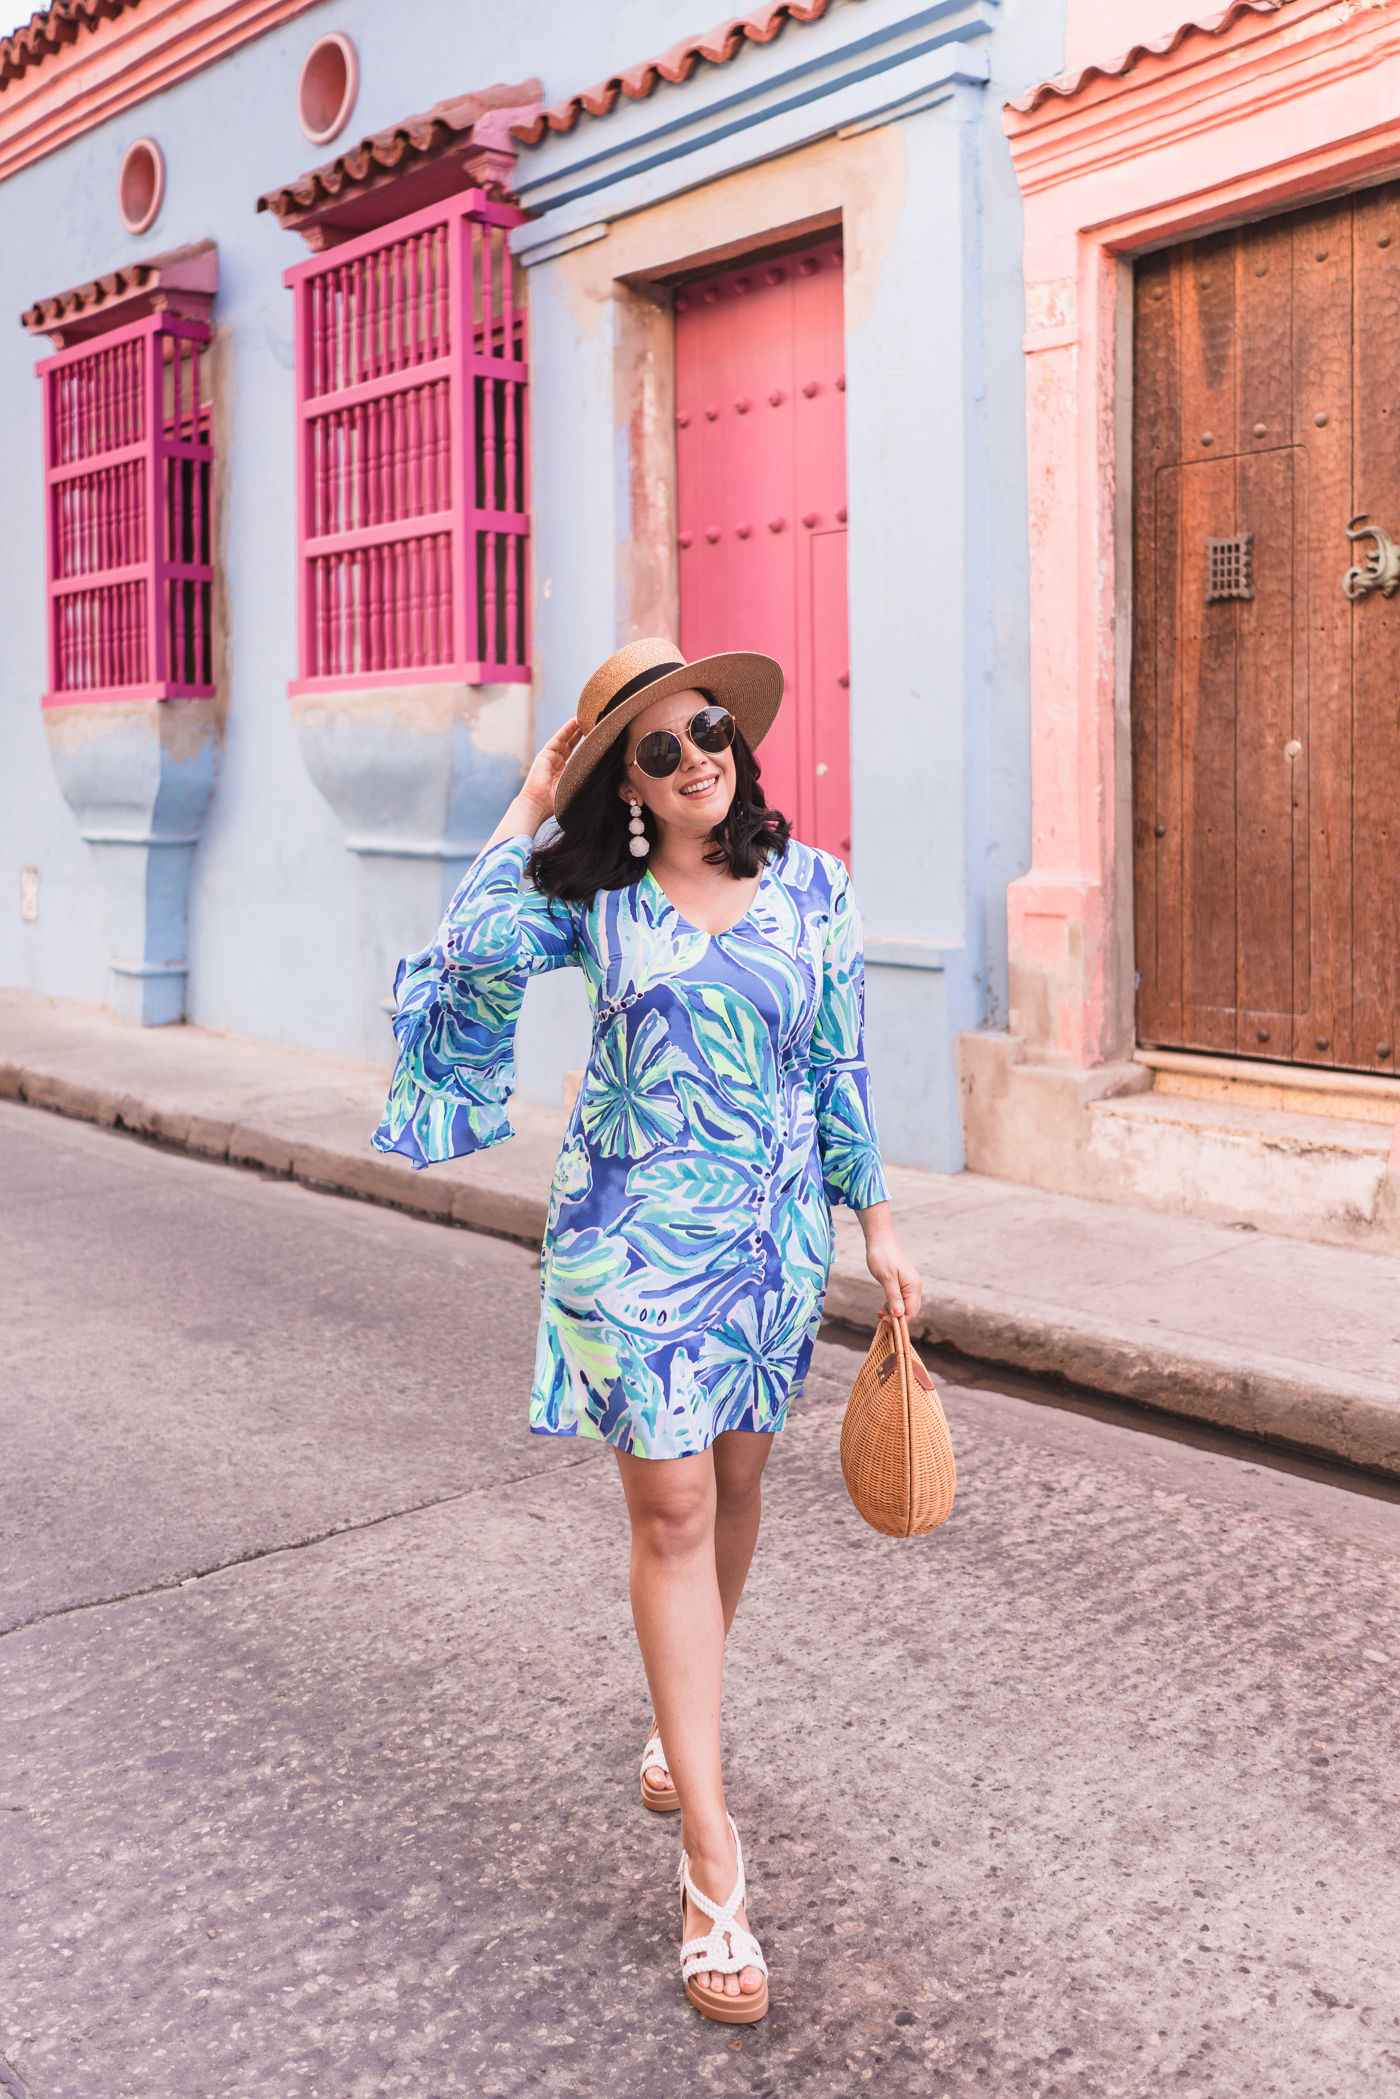 Lilly Pulitzer Dress in Cartagena